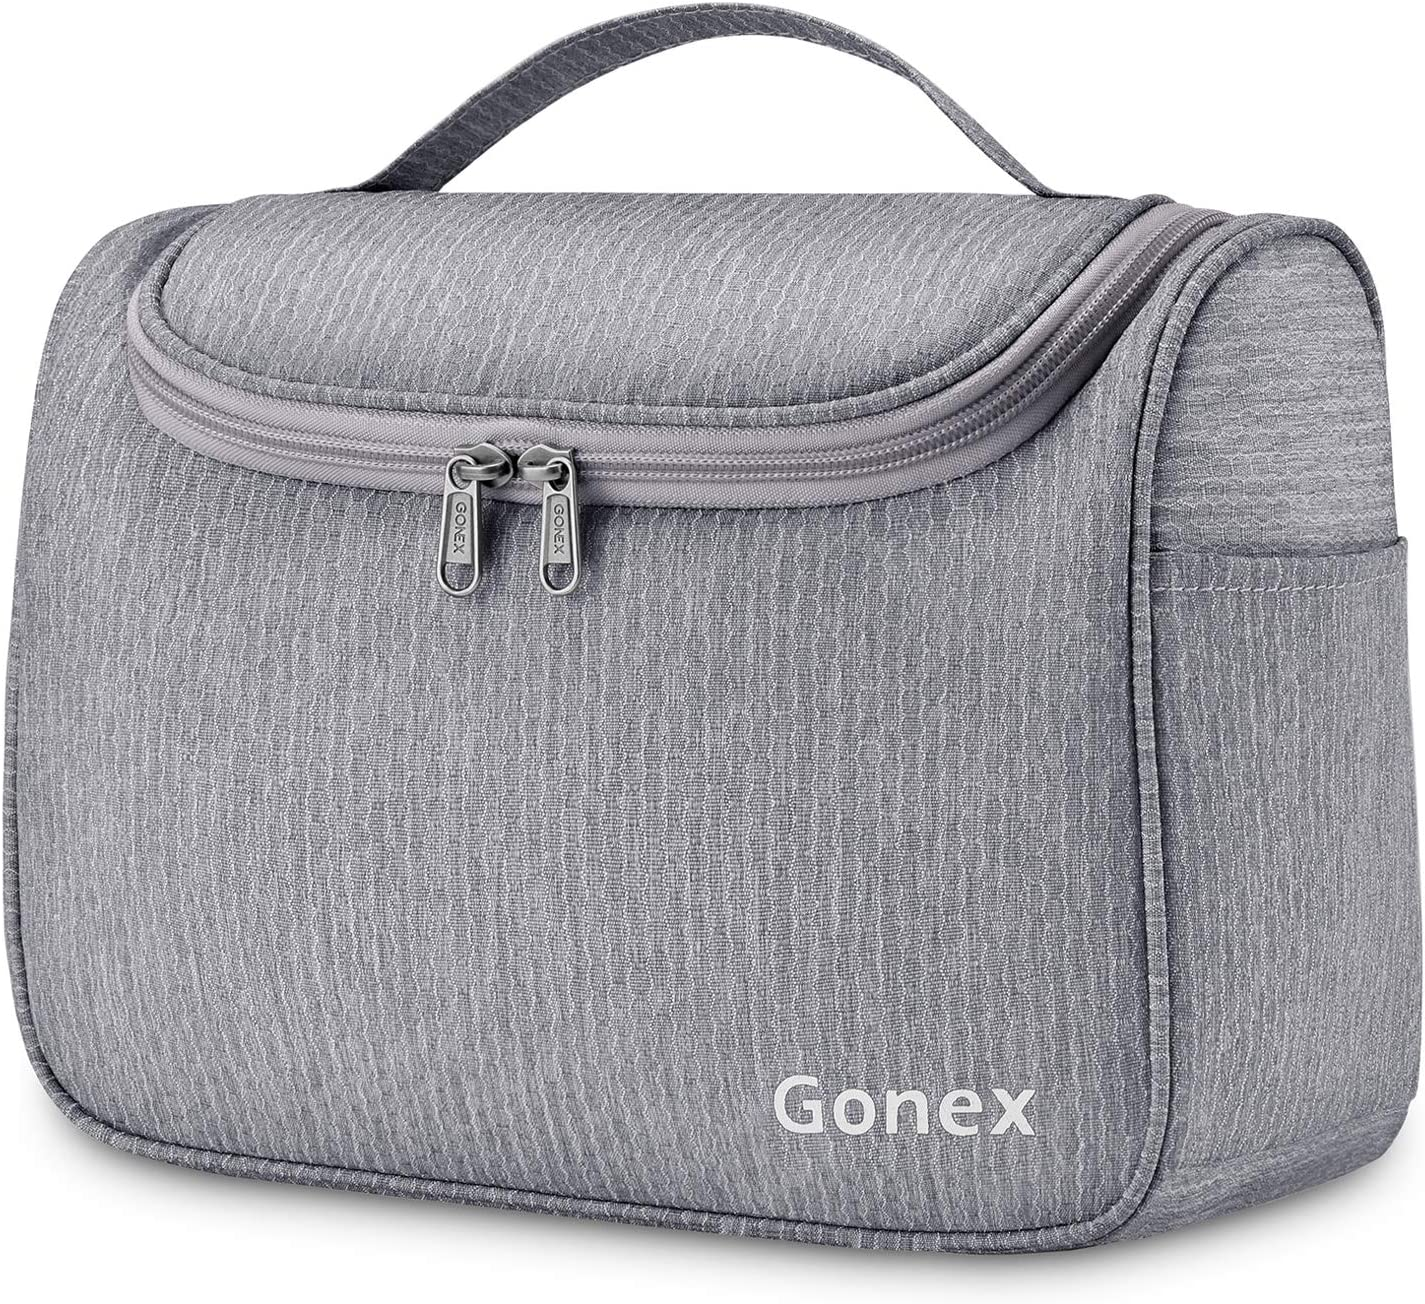 Gonex Hanging Travel Toiletry Bag for Women Men Family Cosmetics Makeup Bag Organizer Dopp Kit Pouch for Bathroom Water-Resistant with Strong Zippers Gray